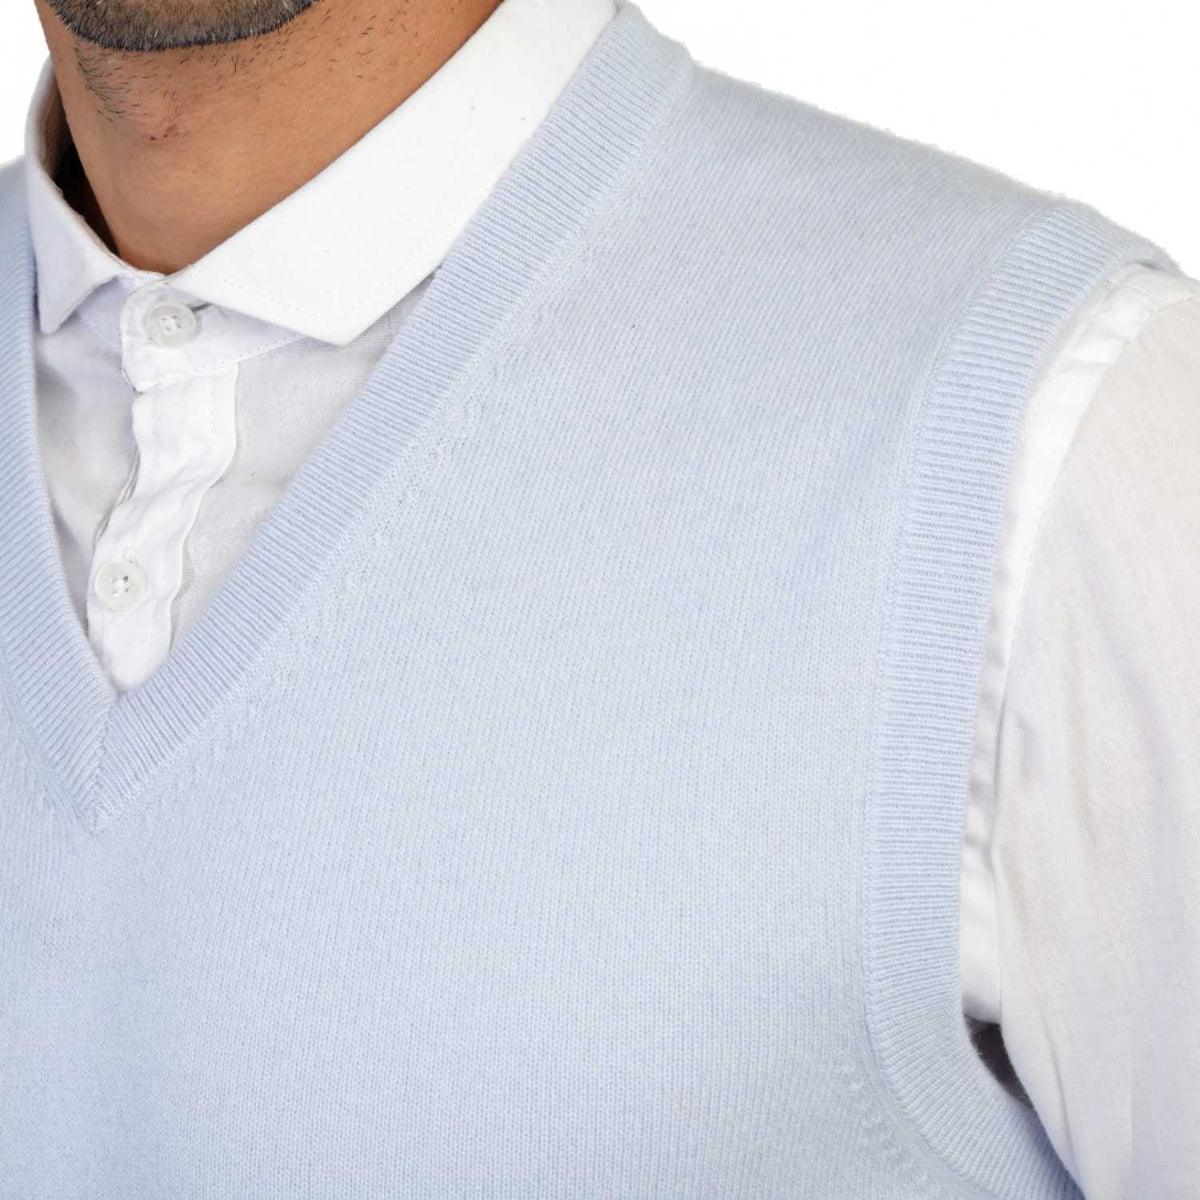 Mens Pale Blue Cashmere Sleeveless Vest Sweater | Close up | Shop at The Cashmere Choice | London